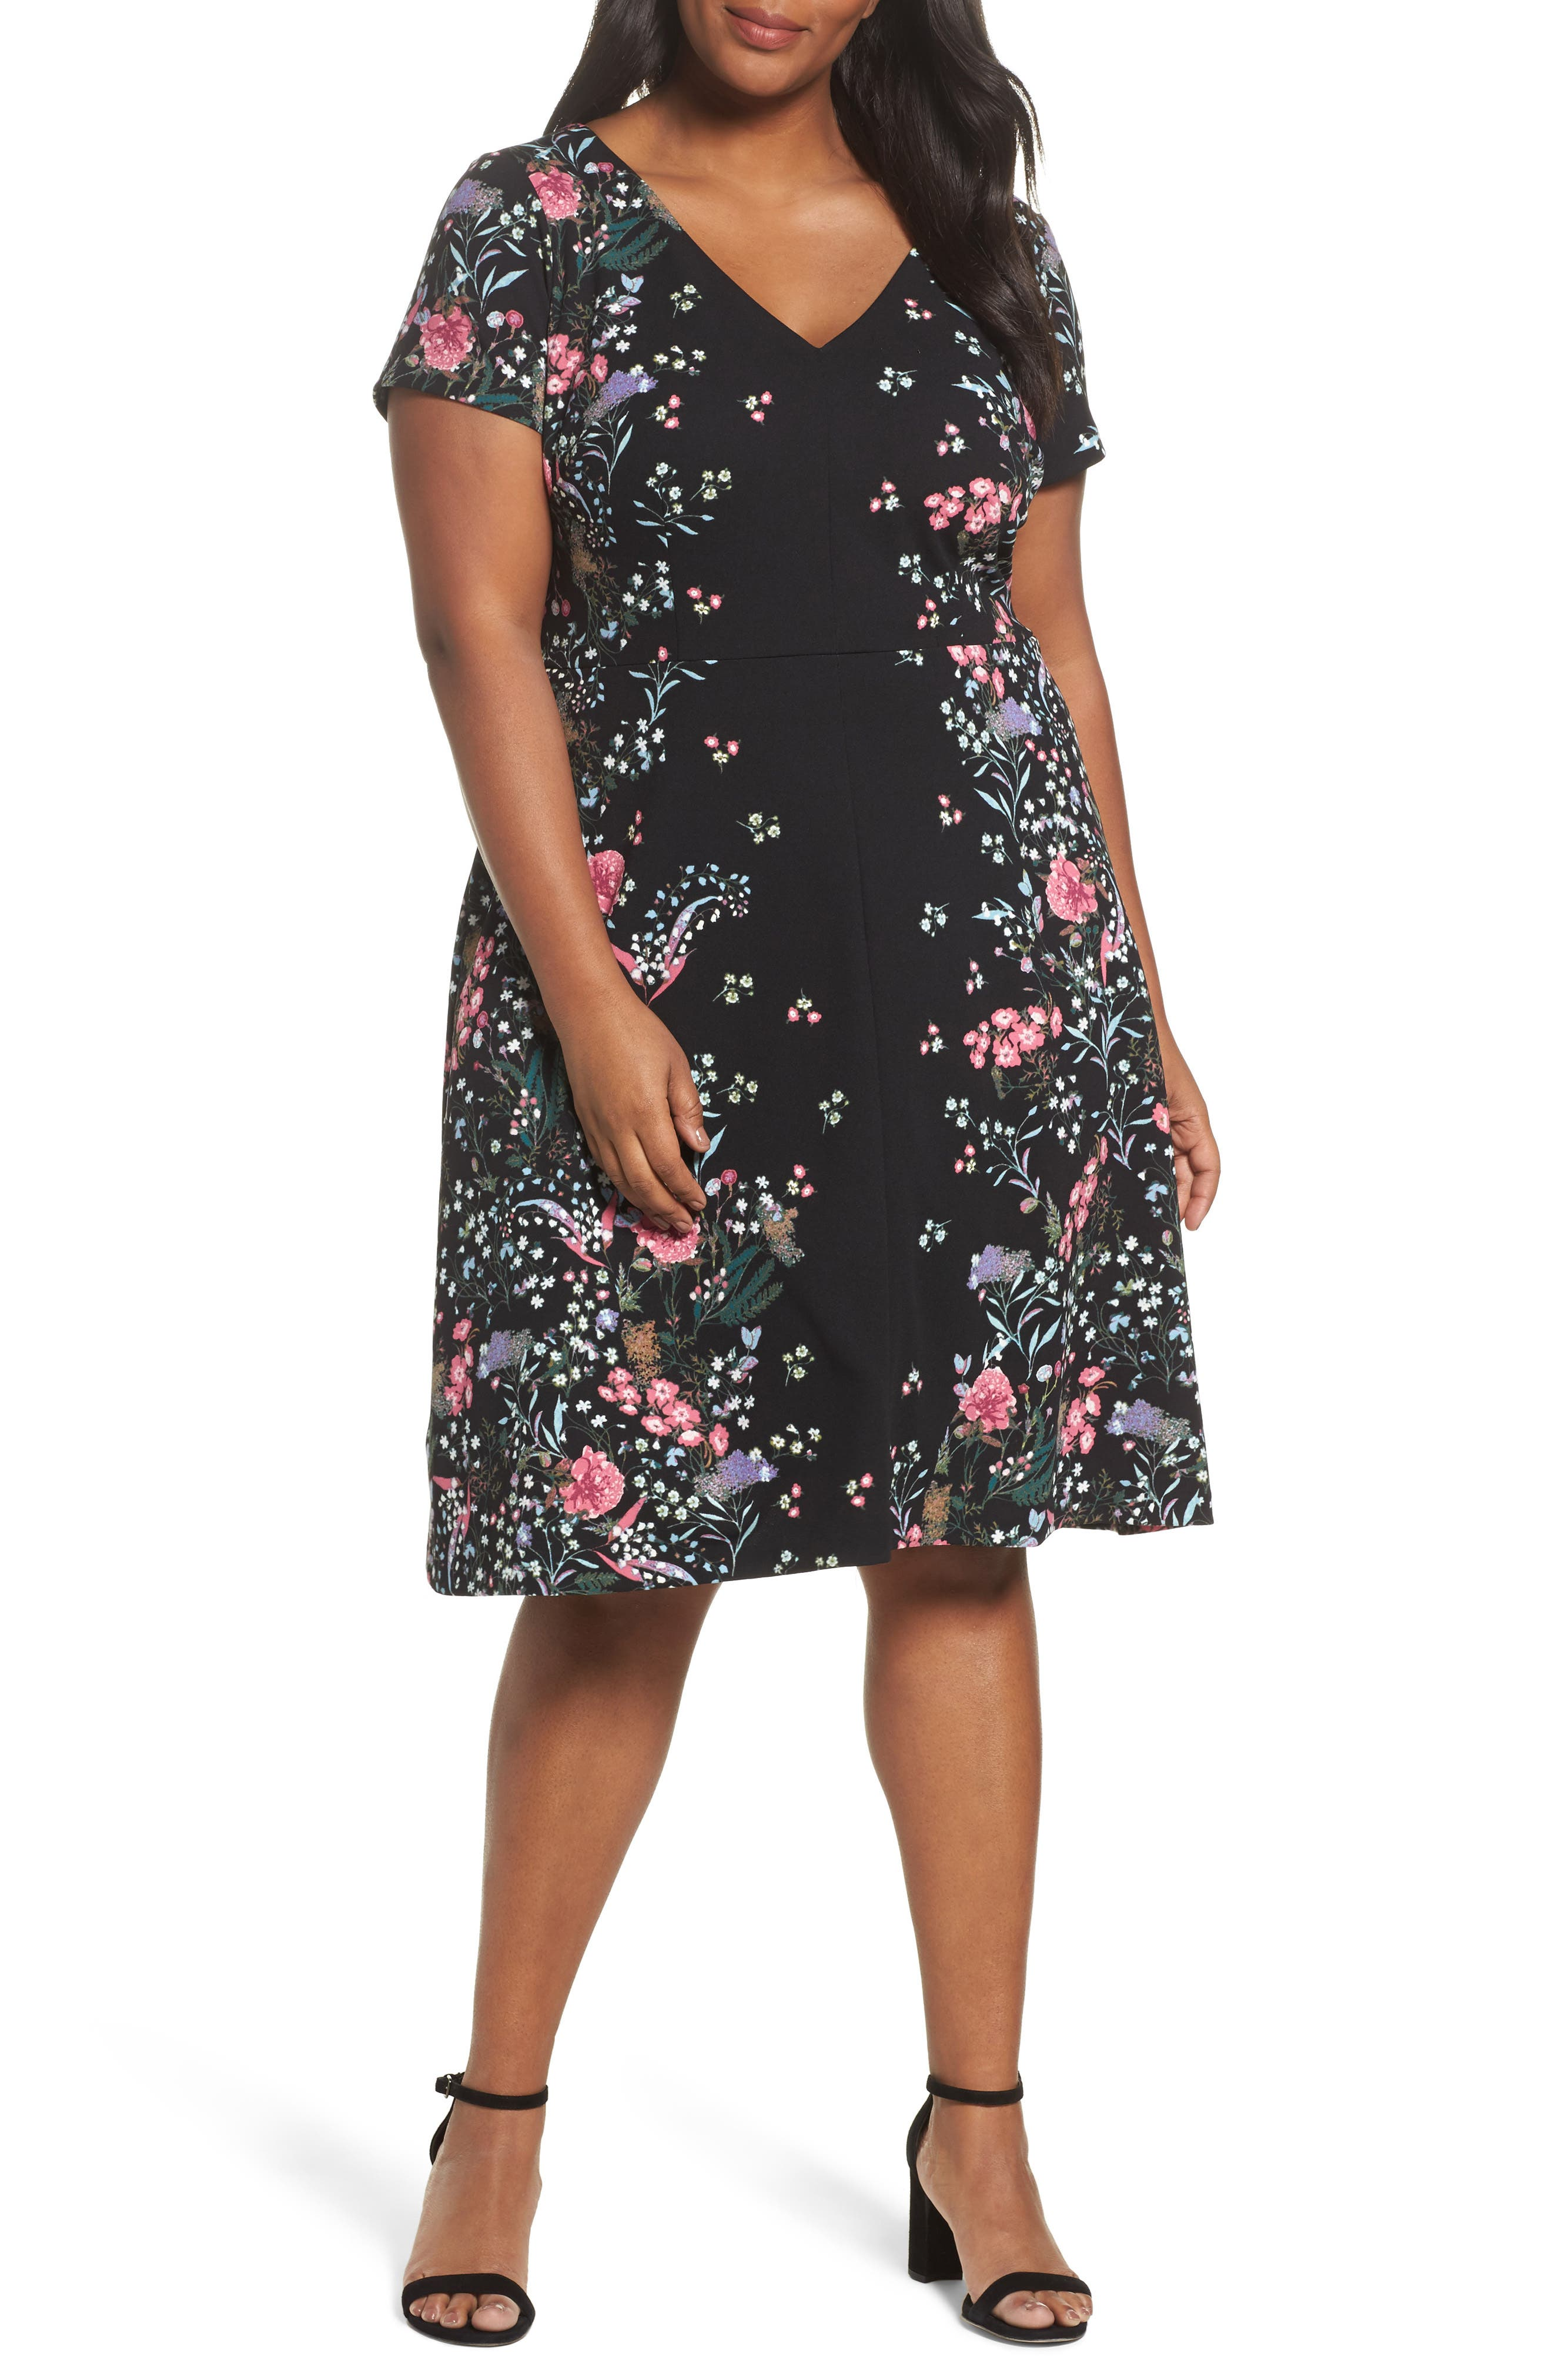 Alternate Image 1 Selected - Adrianna Papell Print Scuba Knit Fit & Flare Dress (Plus Size)